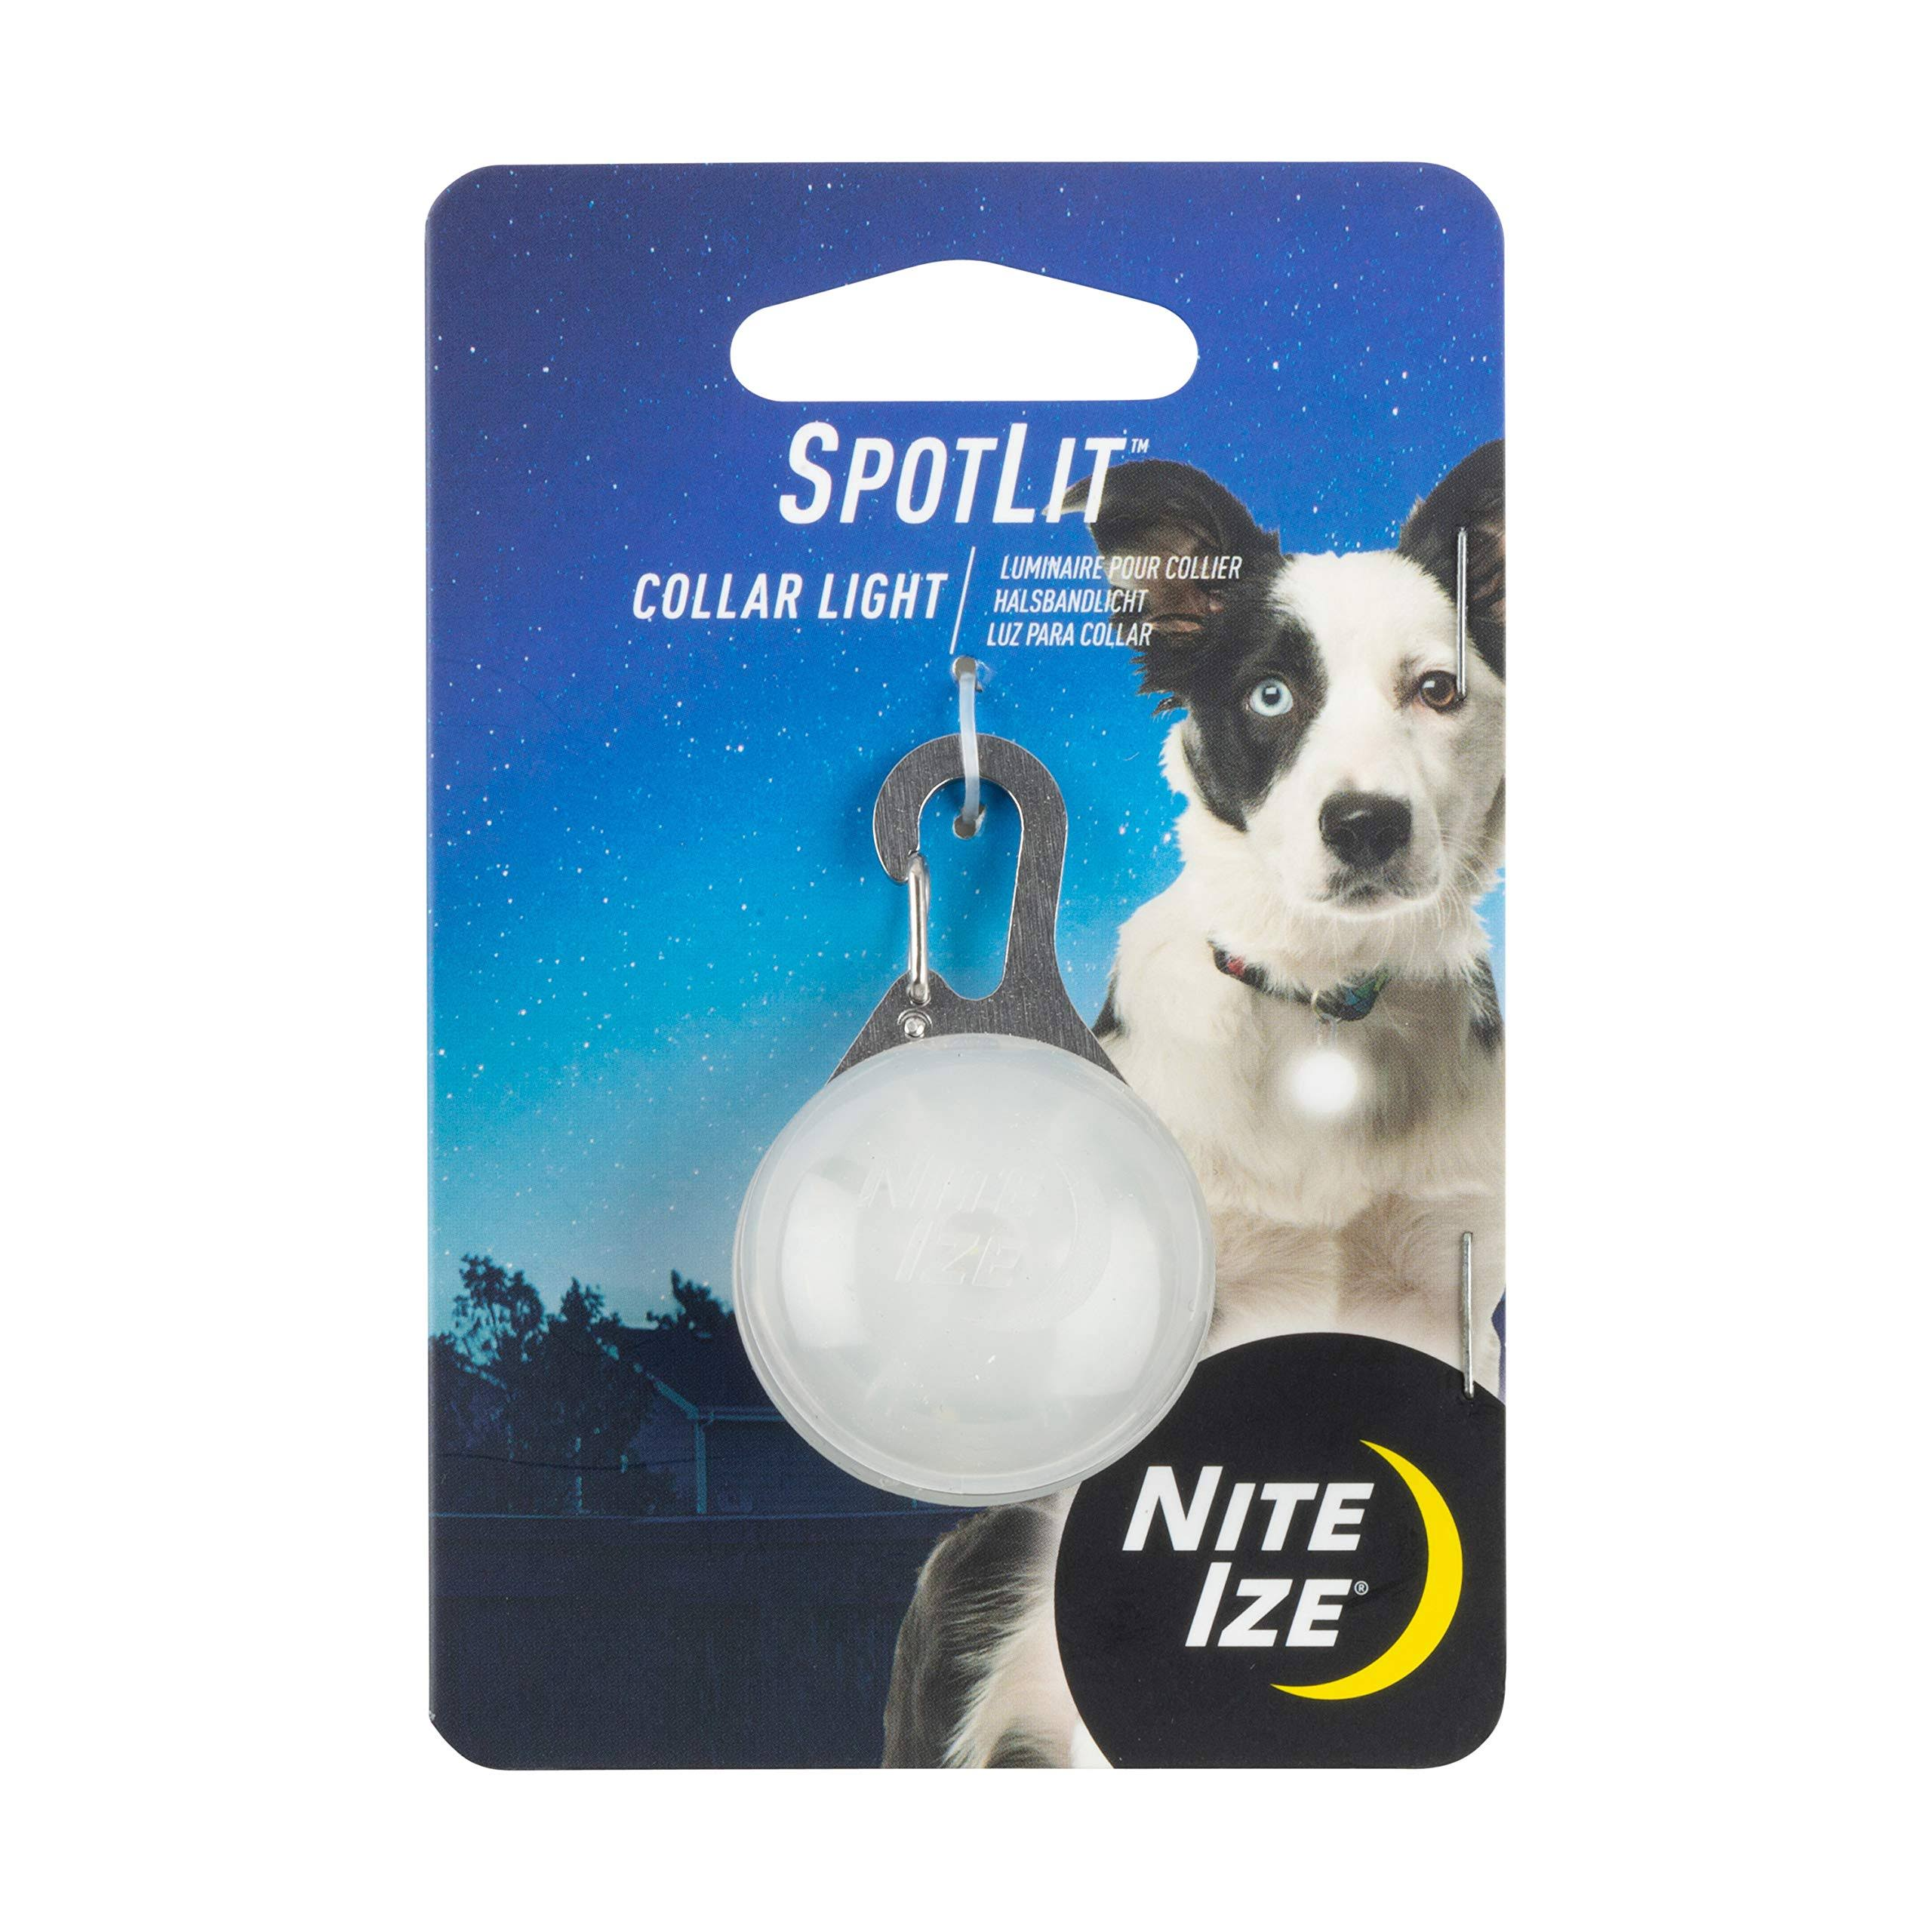 Nite Ize Spotlit Dog Collar Light, White